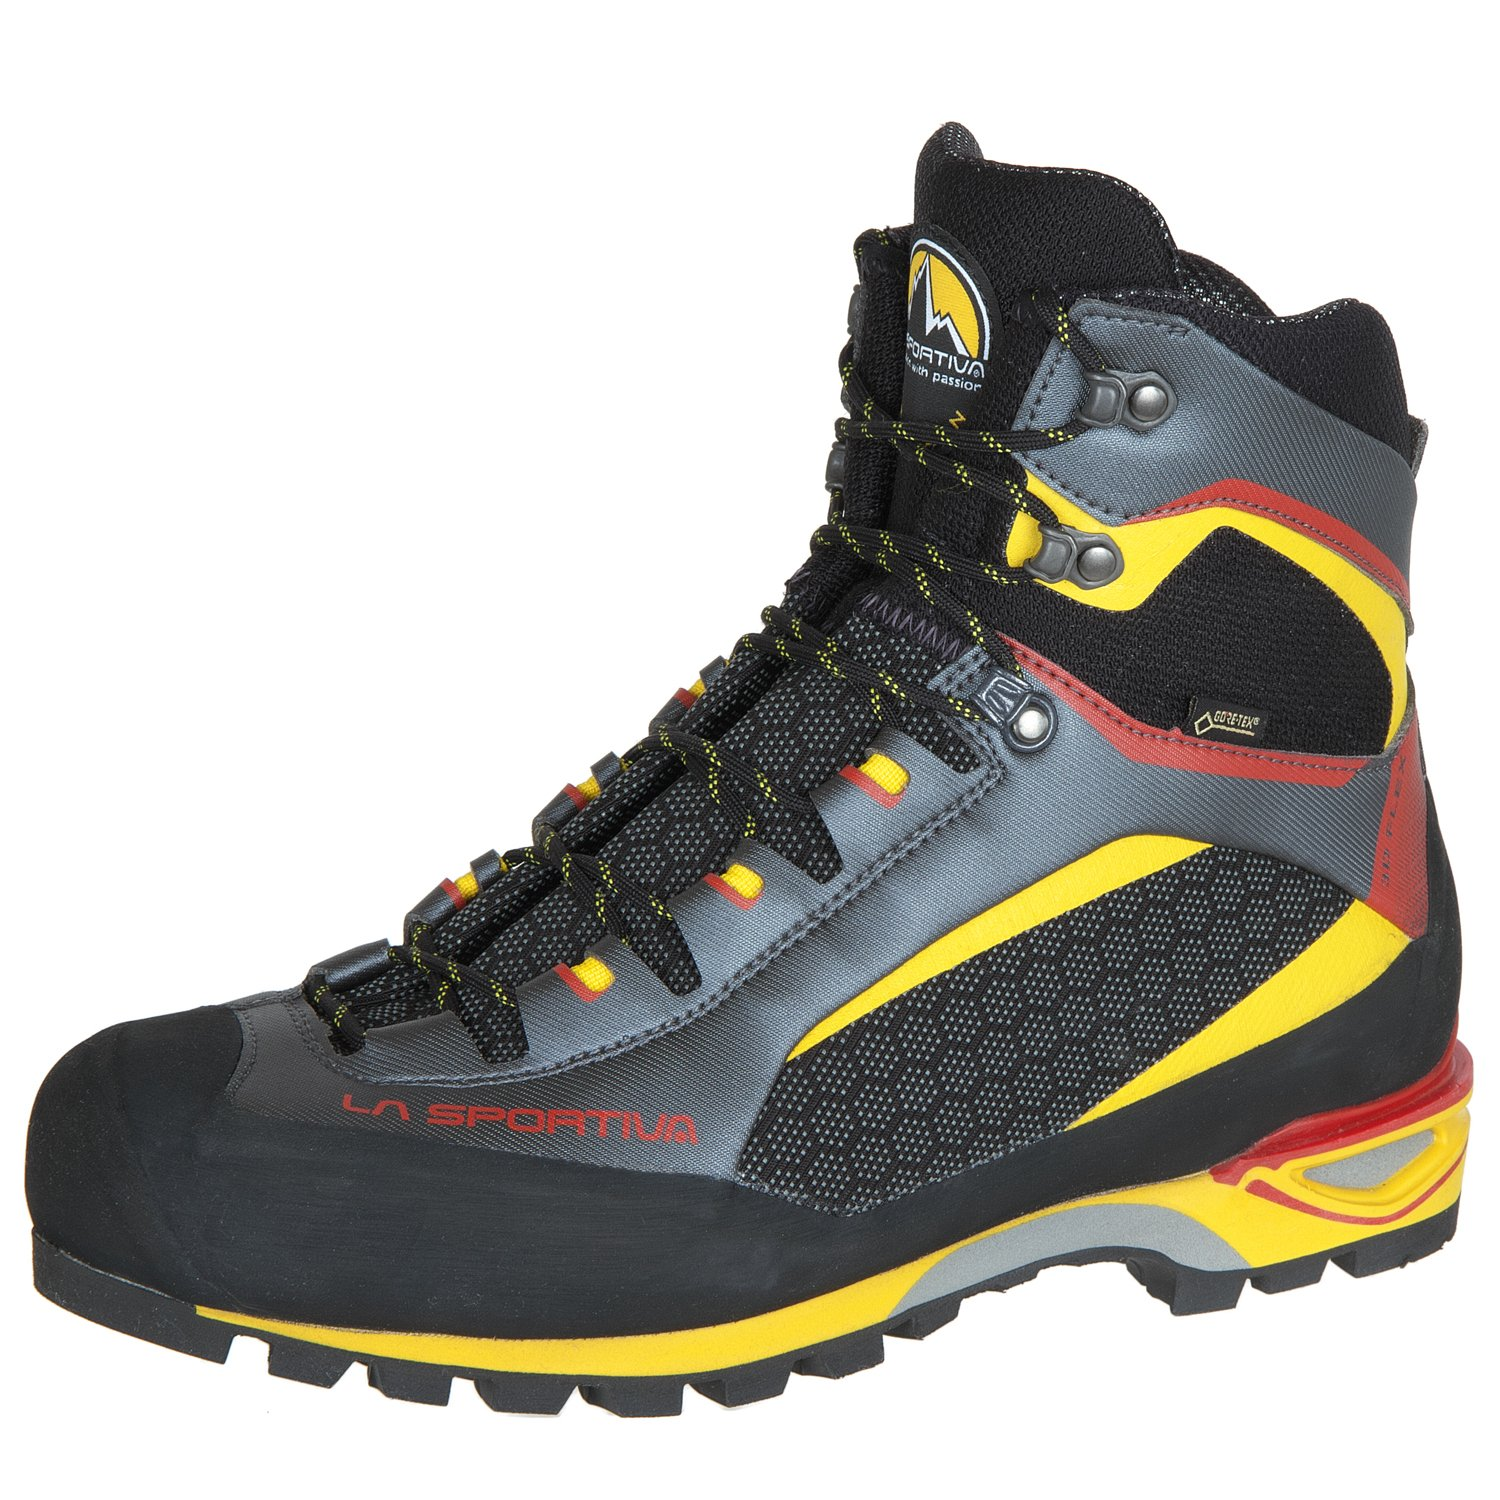 La Sportiva S.p.A. Trango Tower GTX Men